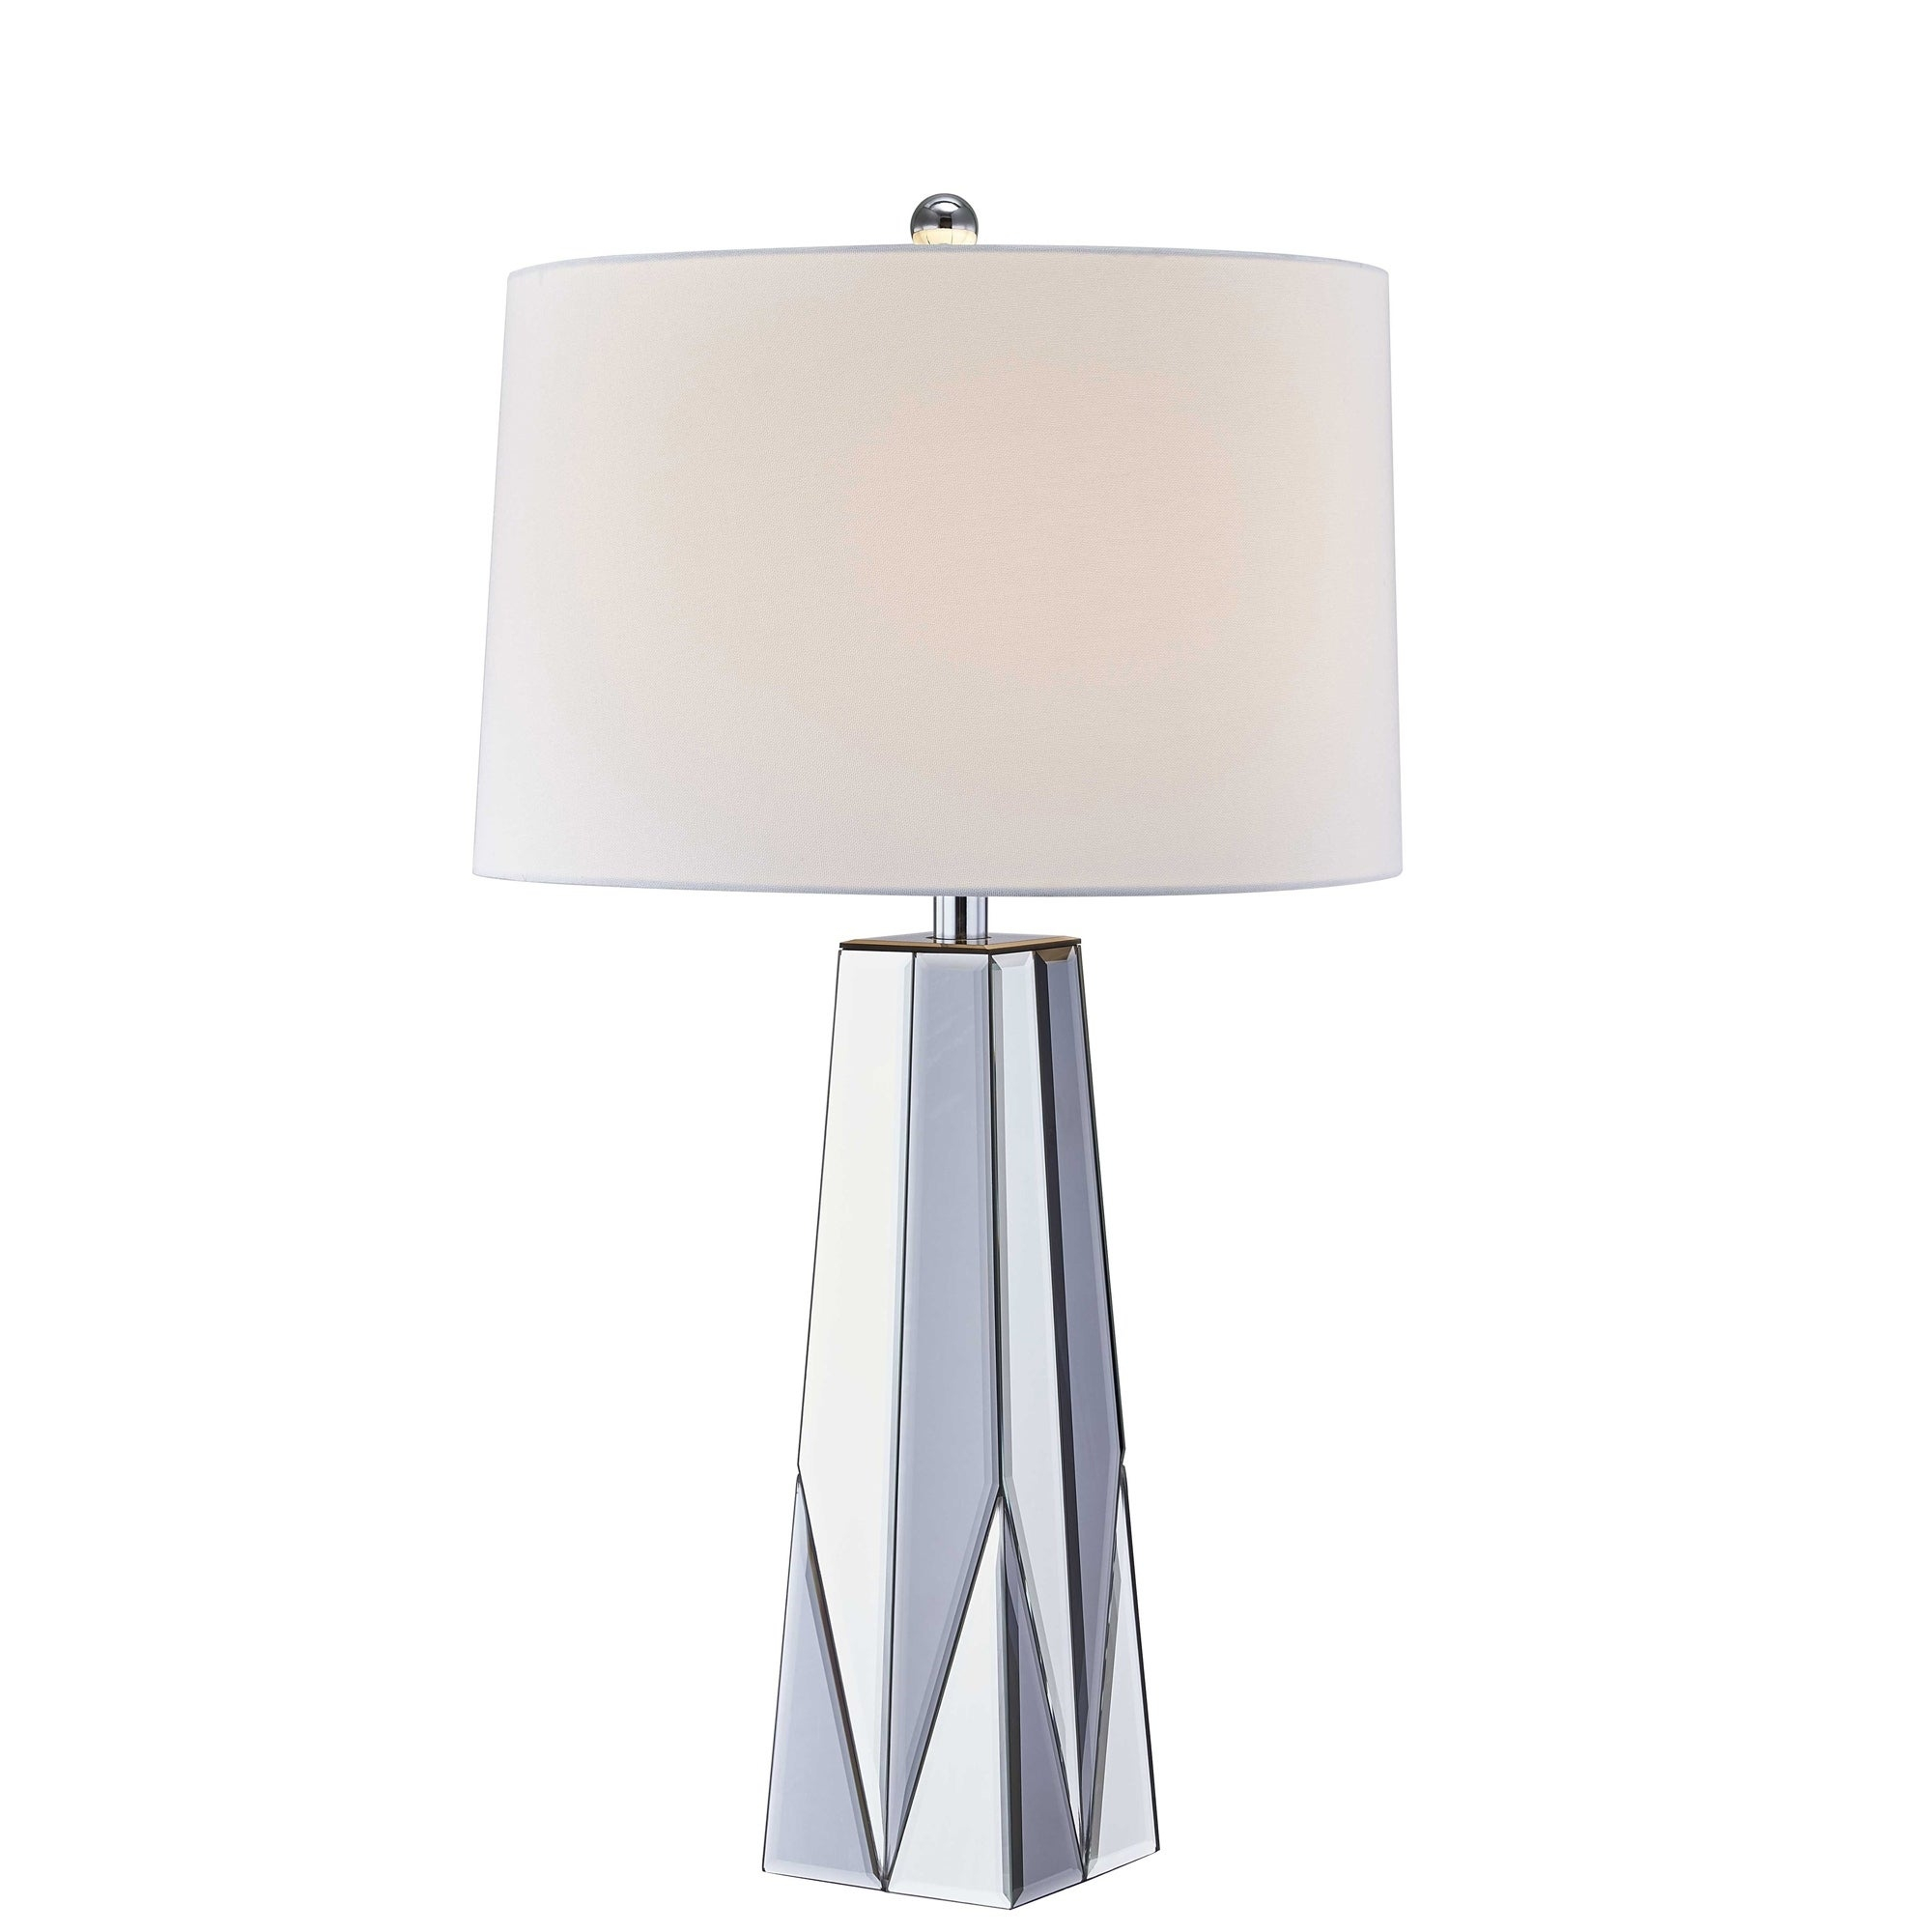 """Glass Tapered Mirror Table Lamp, Silver, 32"""" Throughout Oriana 4 Light Single Geometric Chandeliers (View 27 of 30)"""